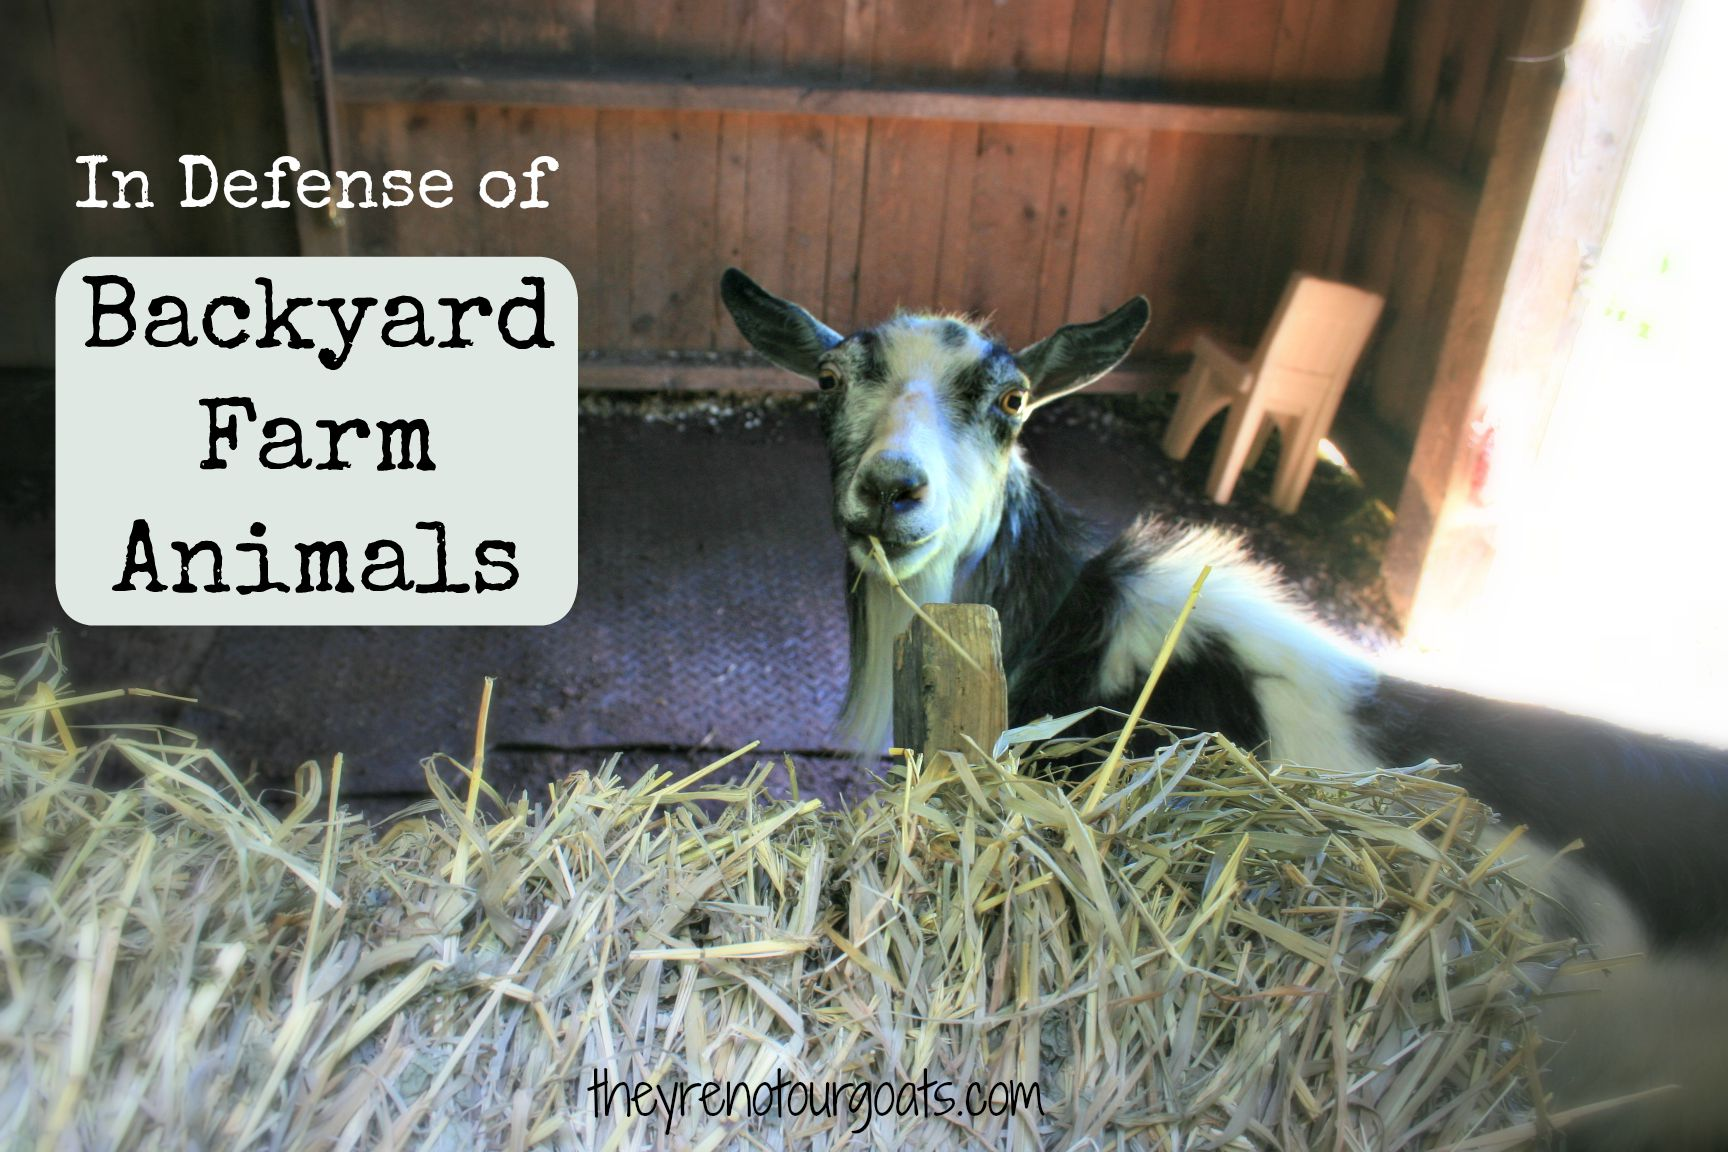 Backyard Farming Animals : In Defense of Backyard Farm Animals  They?re Not Our Goats